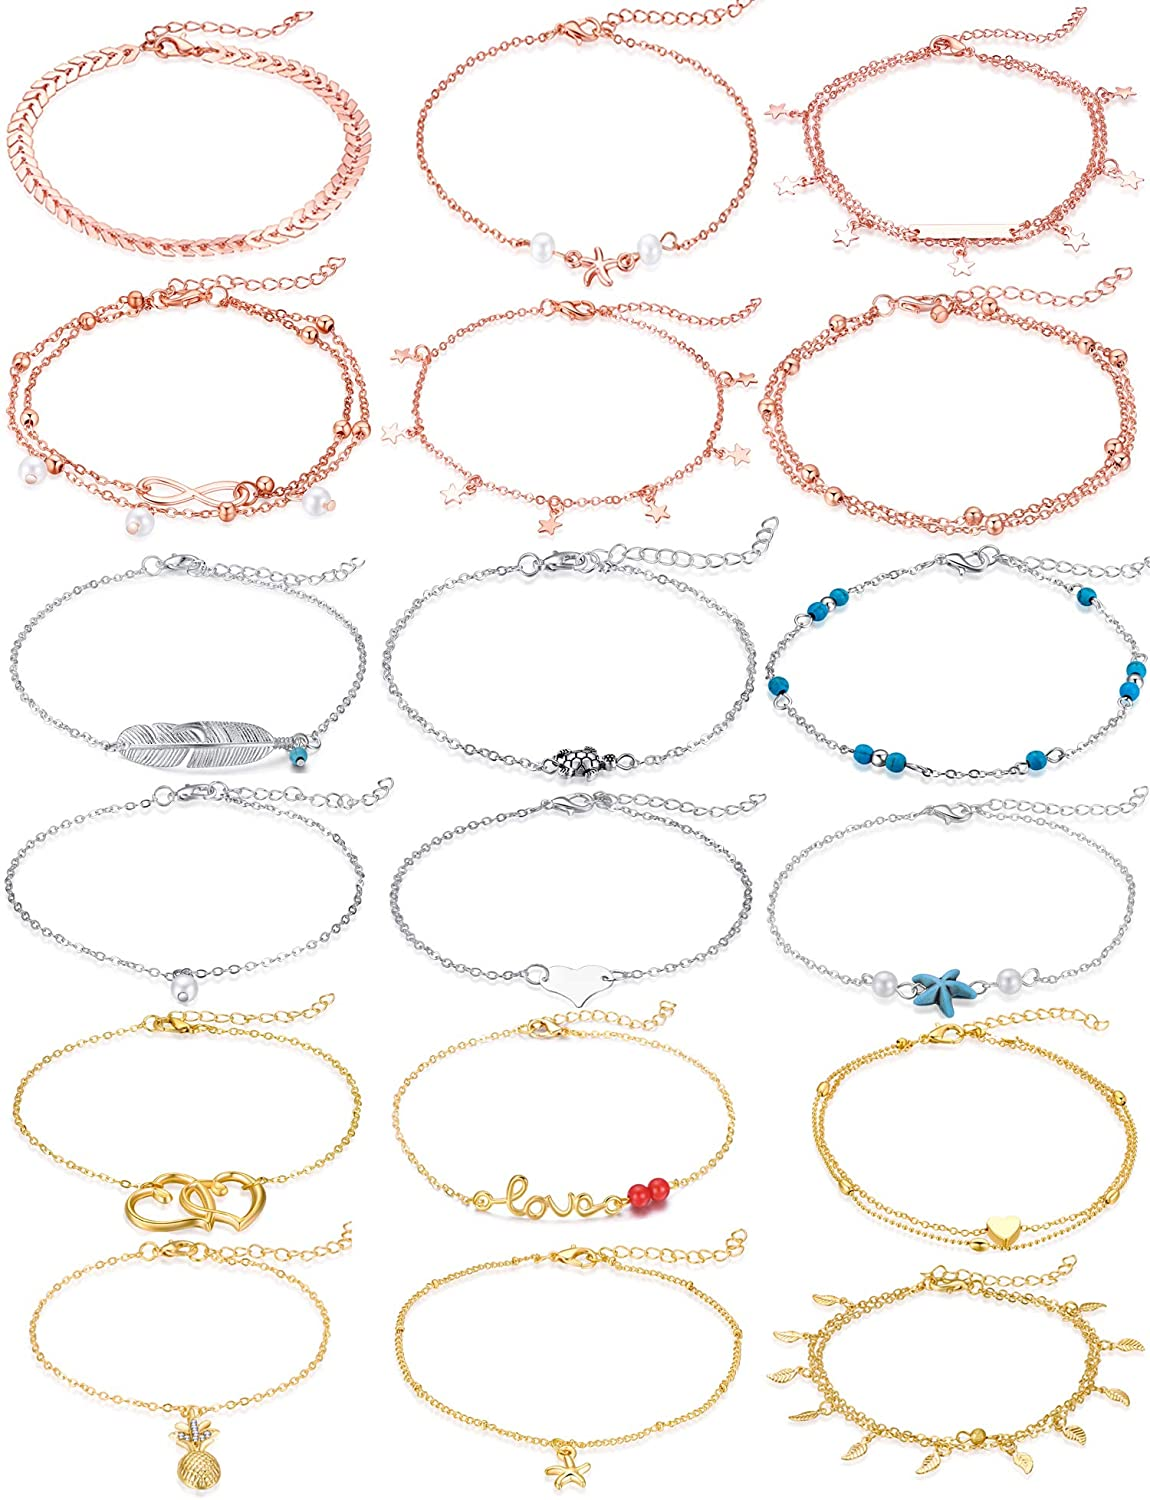 Cocamiky 18Pcs Anklet Bracelets for Women Girls Gold Silver Rose Gold Ankle Set Boho Layered Beach Adjustable Chain Anklet Foot Jewelry